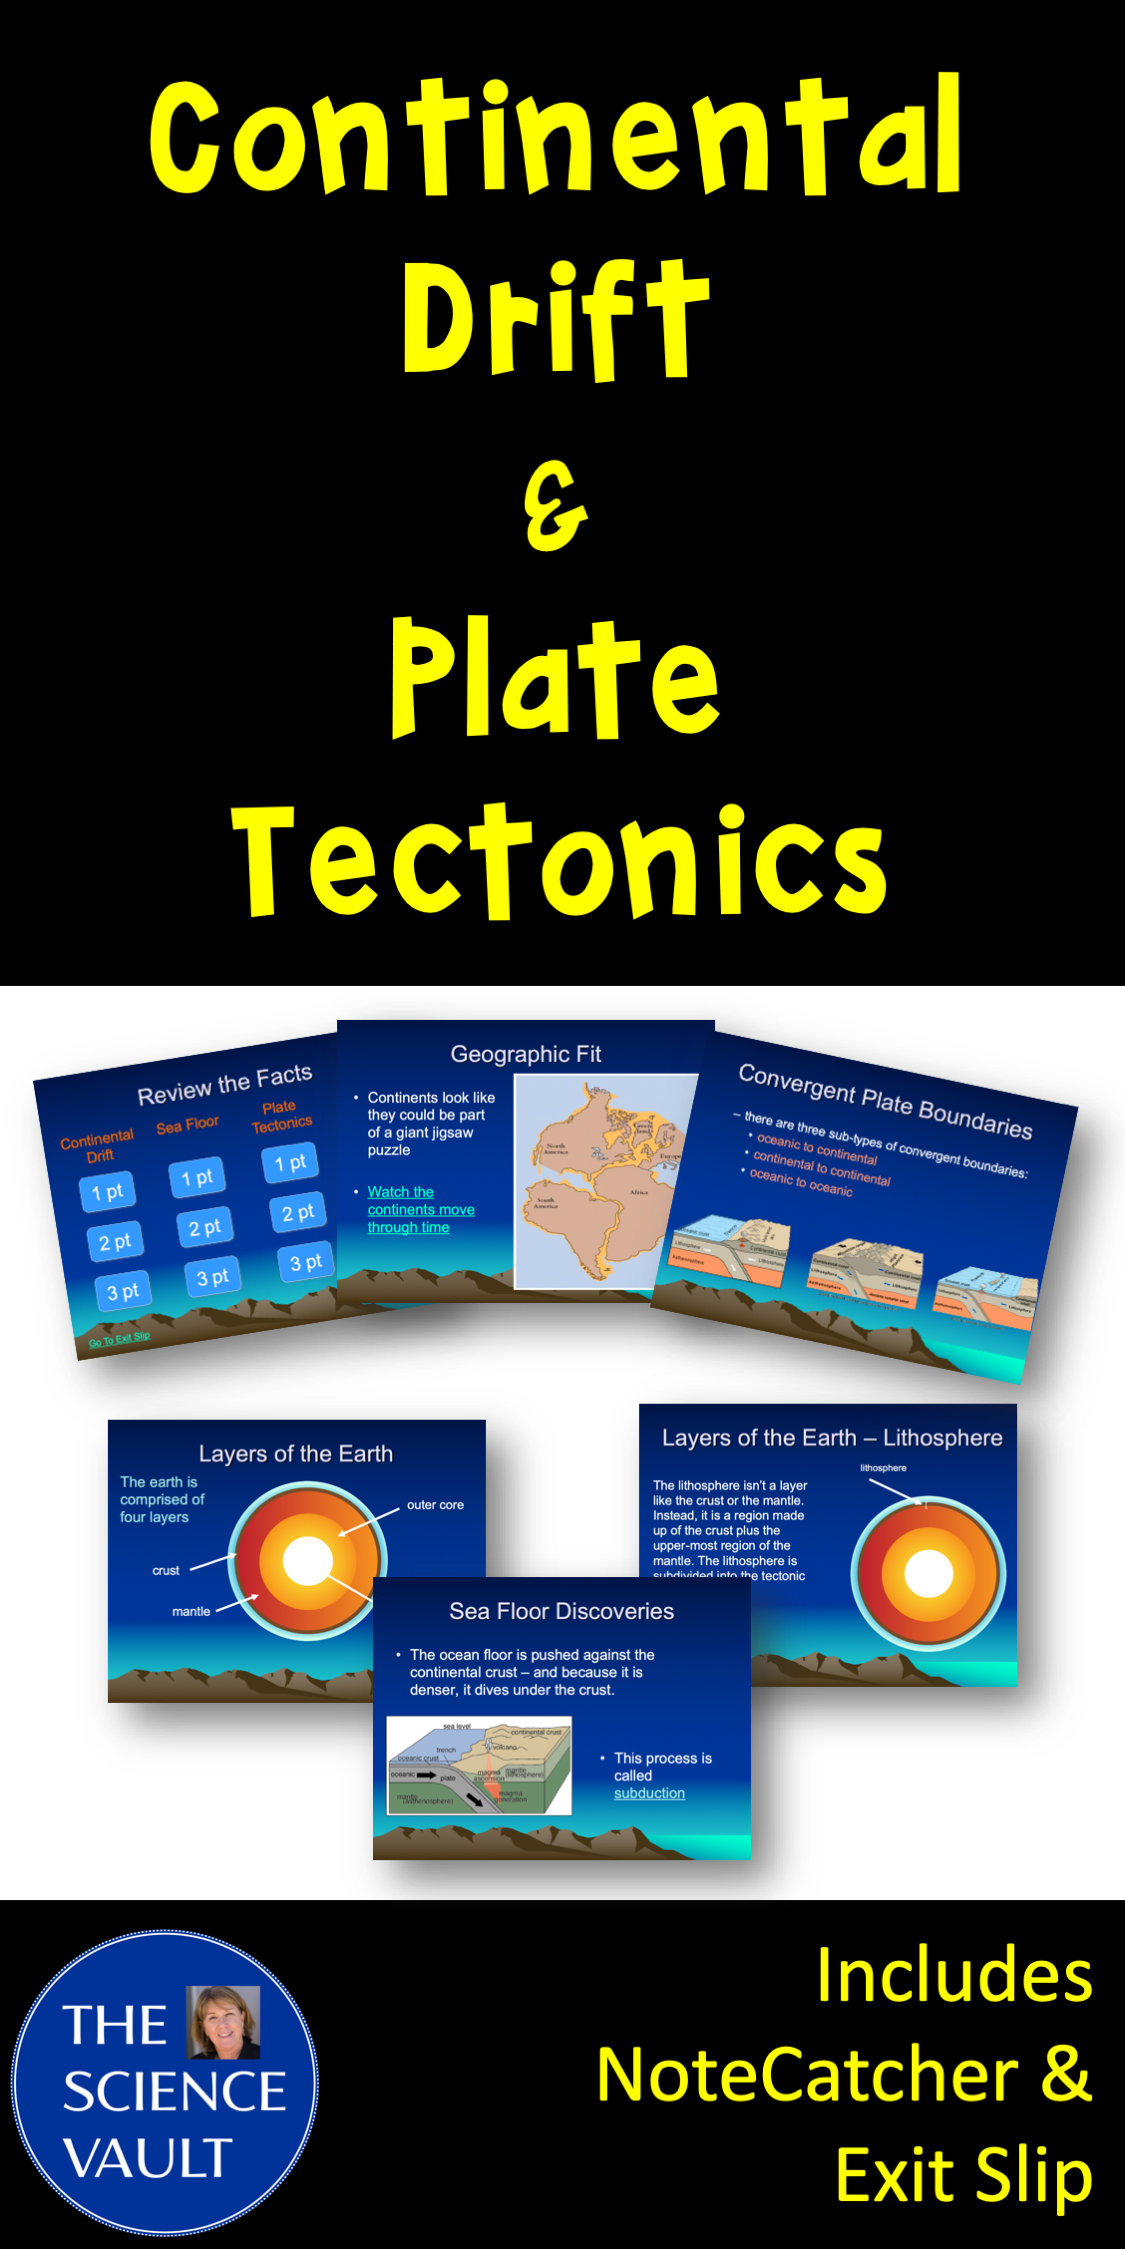 Continental Drift Alfred Wegener Plate Tectonics Layers Of The Earth Asthenosphere Lithosphere Convergent Plate Tectonics Continental Drift Earth Layers [ 2249 x 1125 Pixel ]